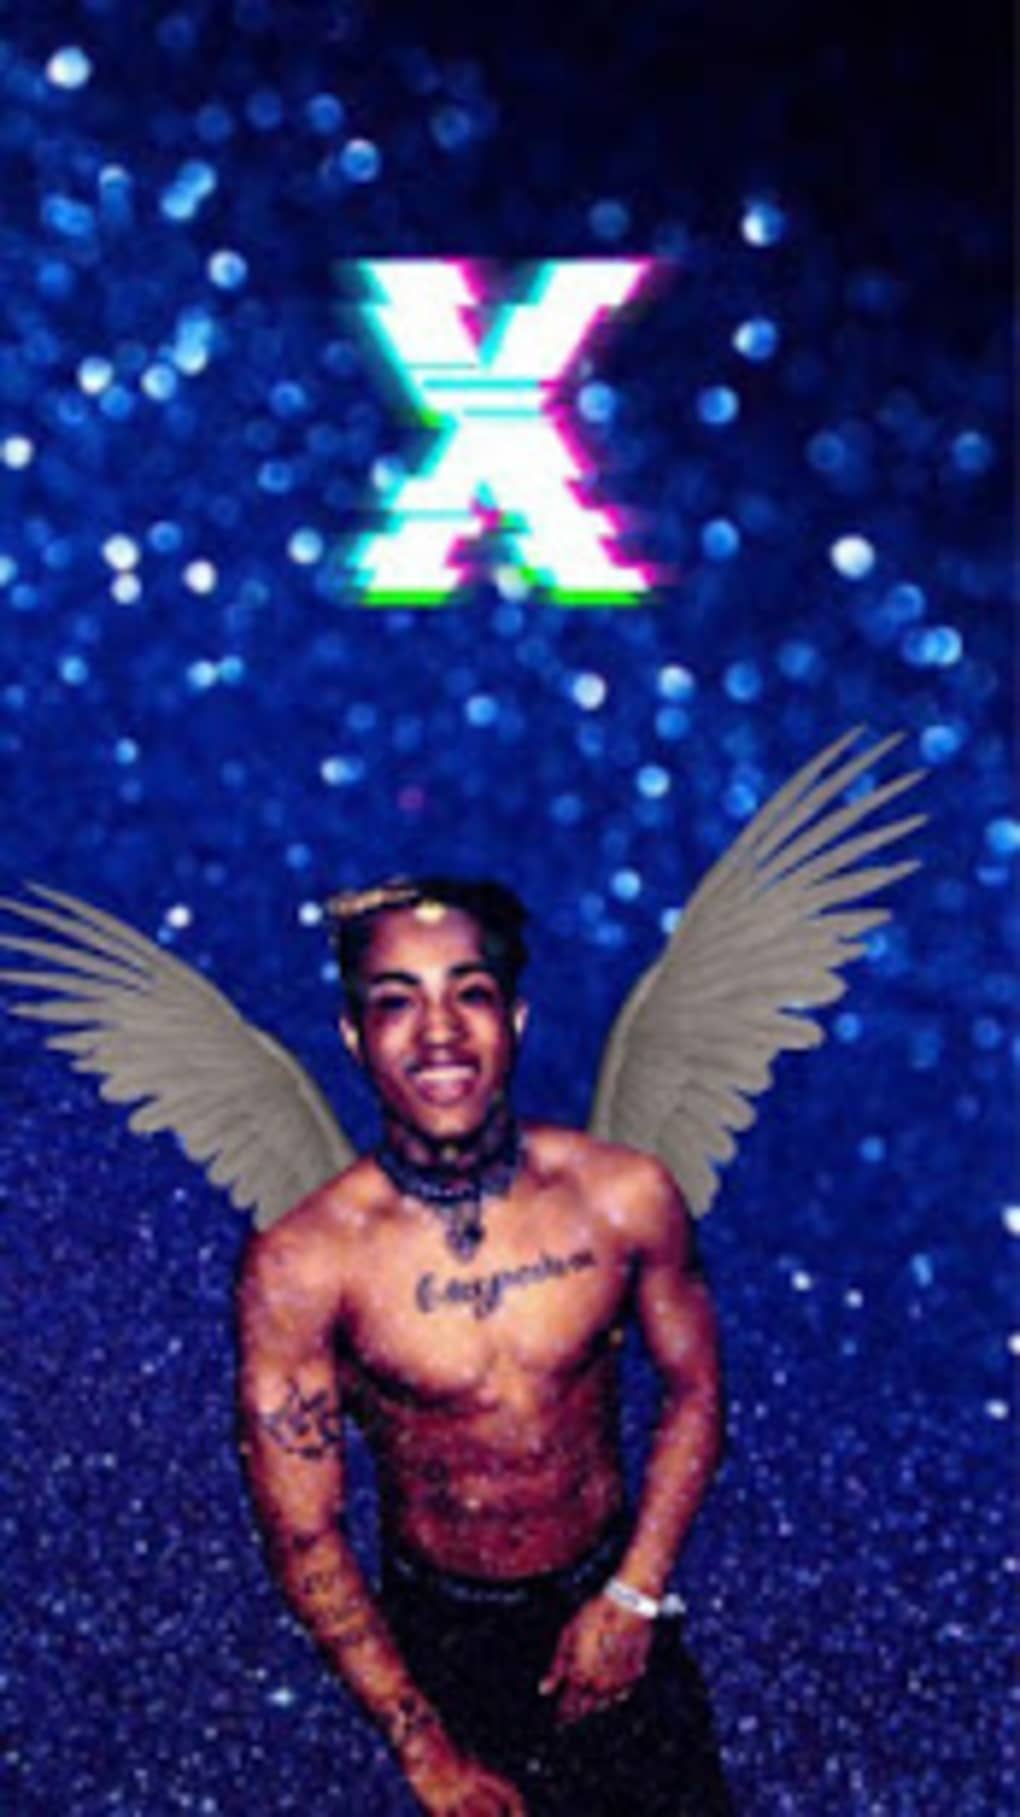 Free Download Xxxtentacion Wallpapers For Android Download